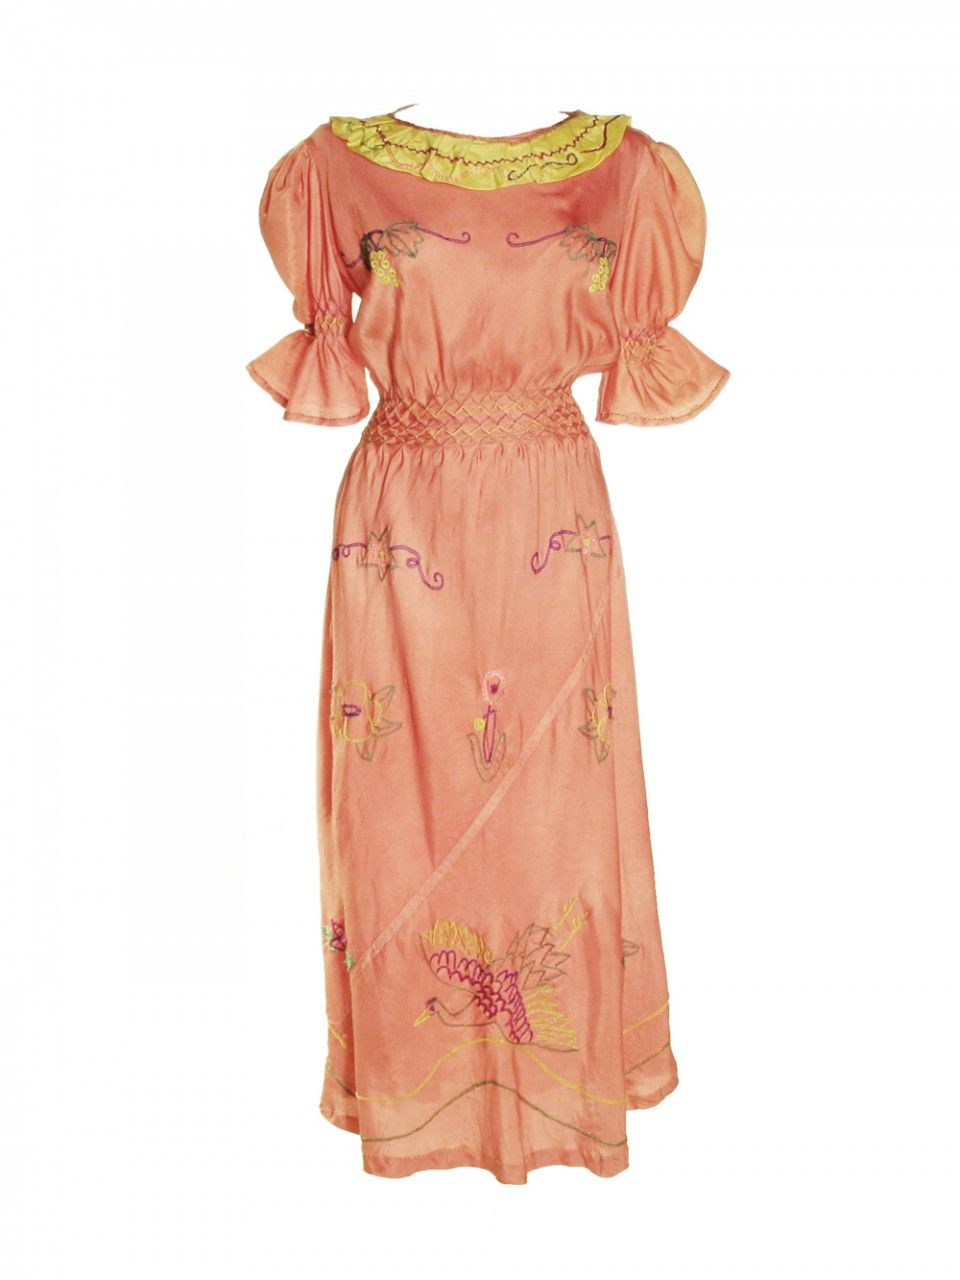 1930's embroidered silk dress